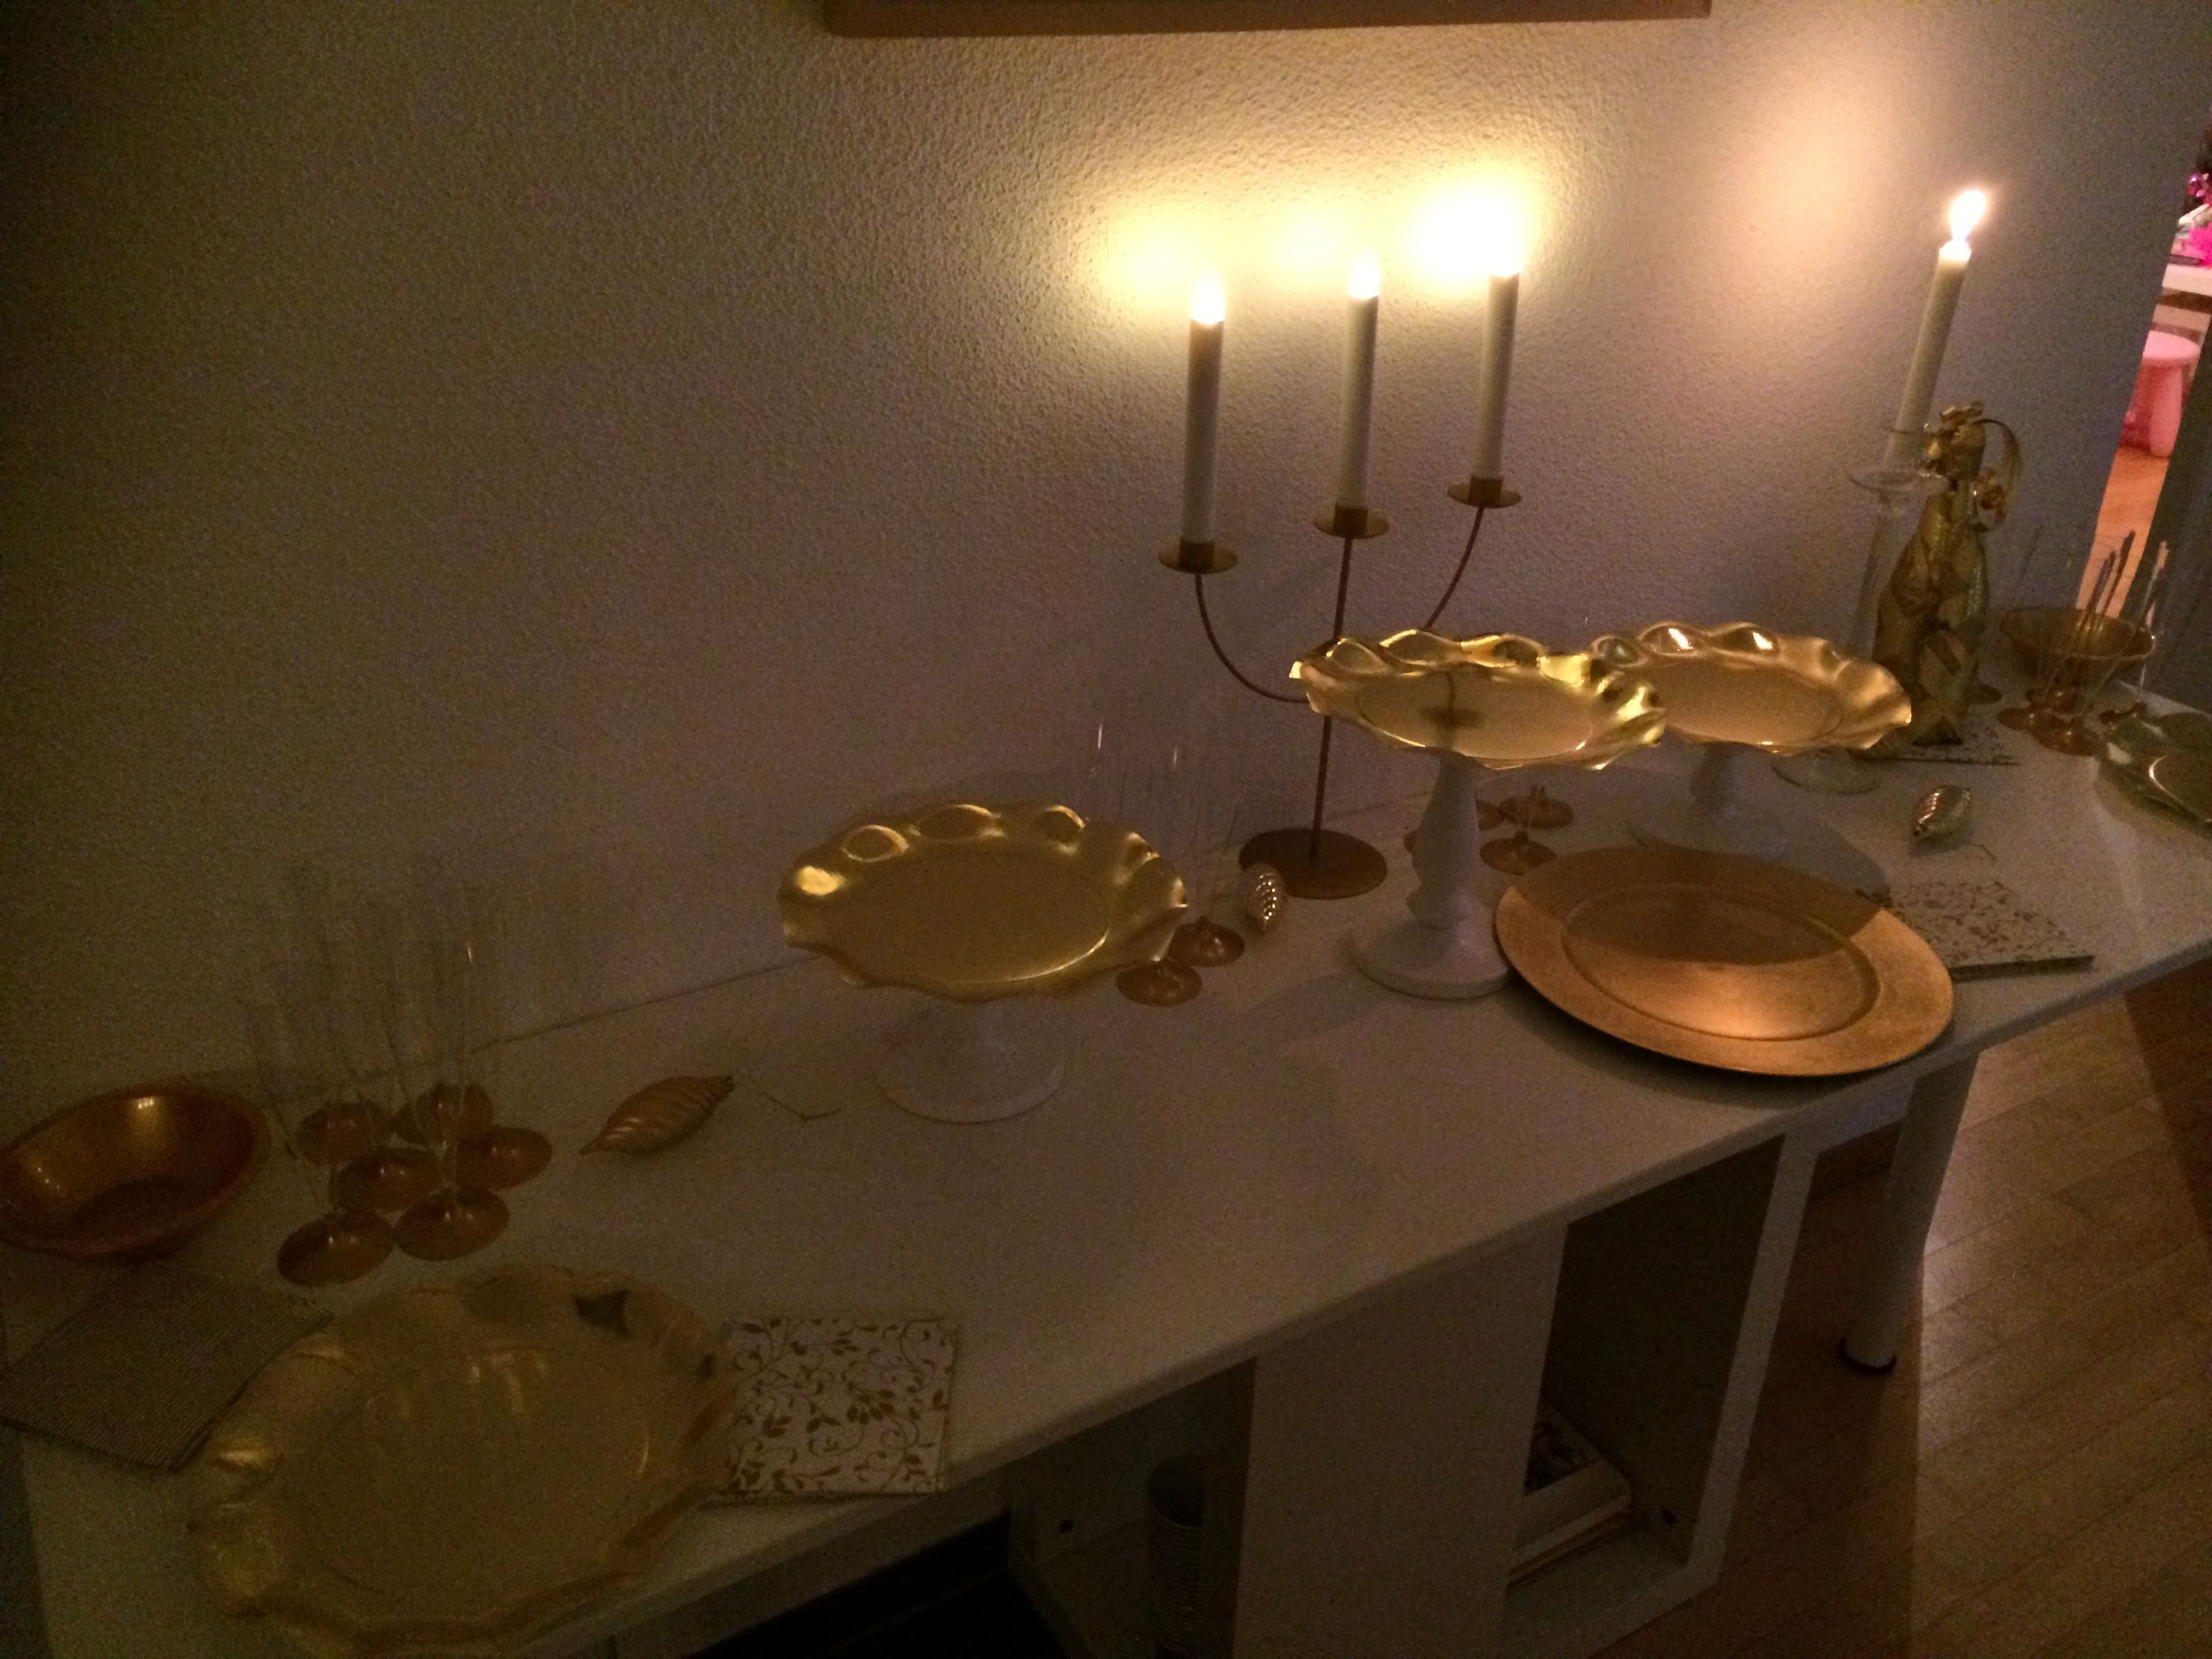 ☆ silvester / new year's eve decoration 2015/16 ☆